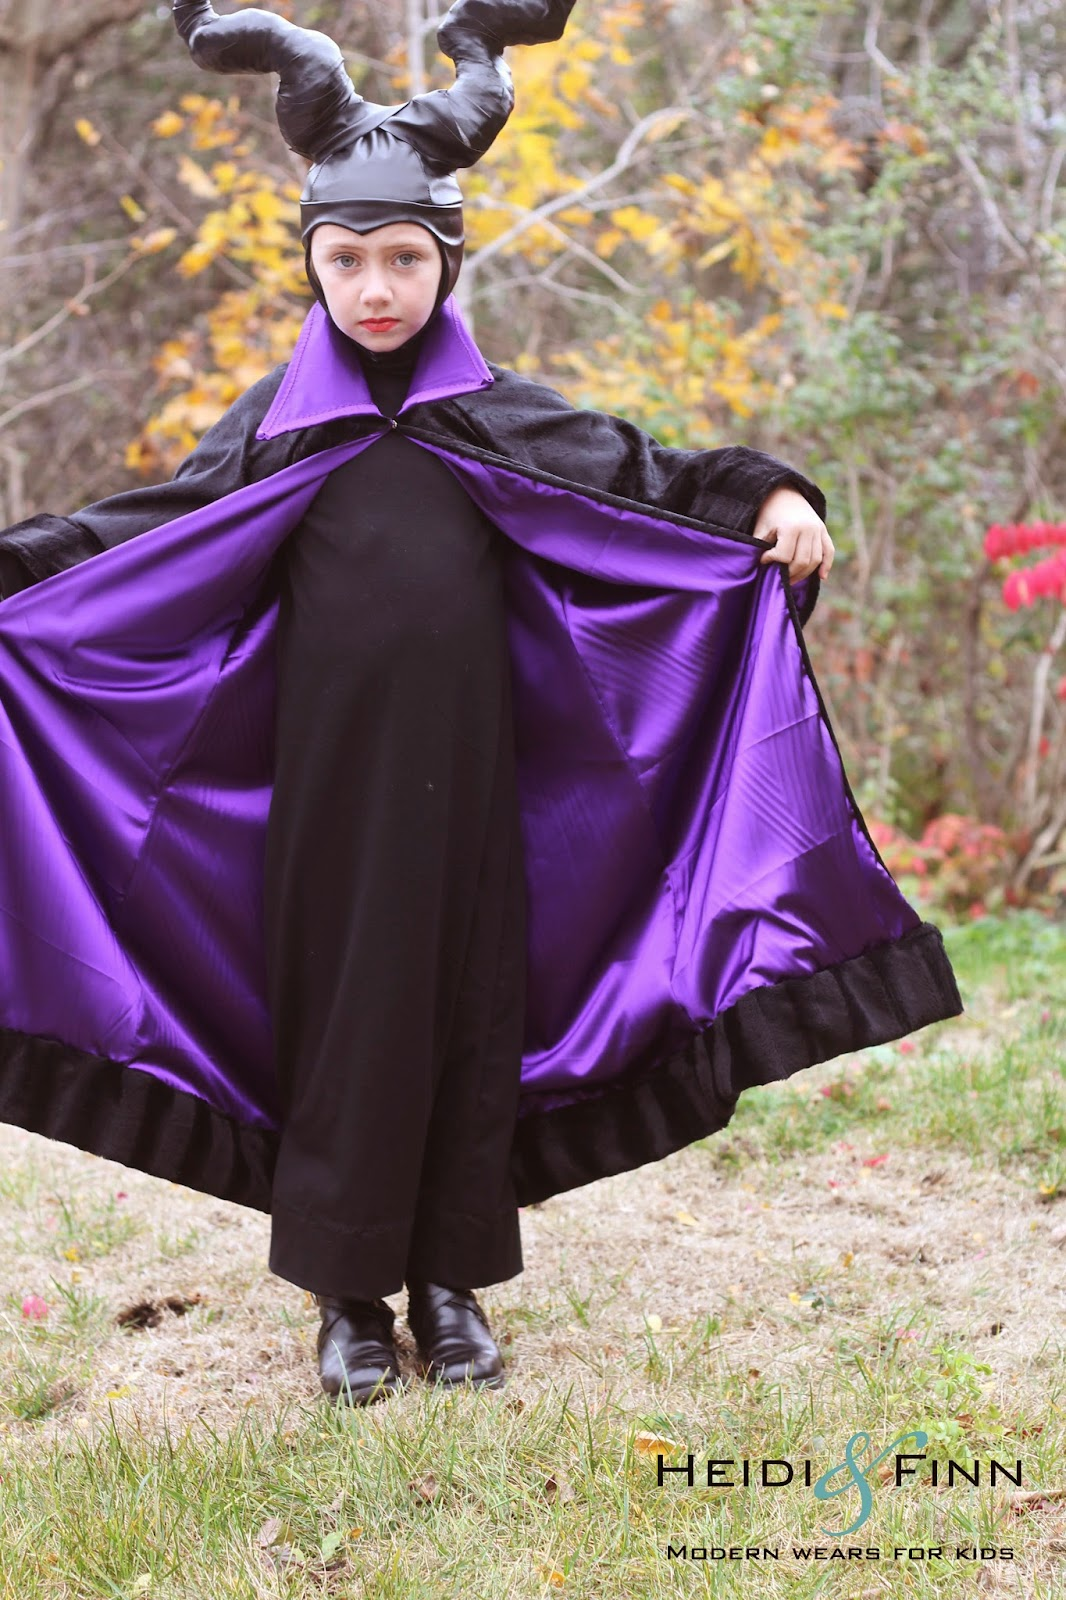 HeidiandFinn modern wears for kids: Maleficent Costume ...